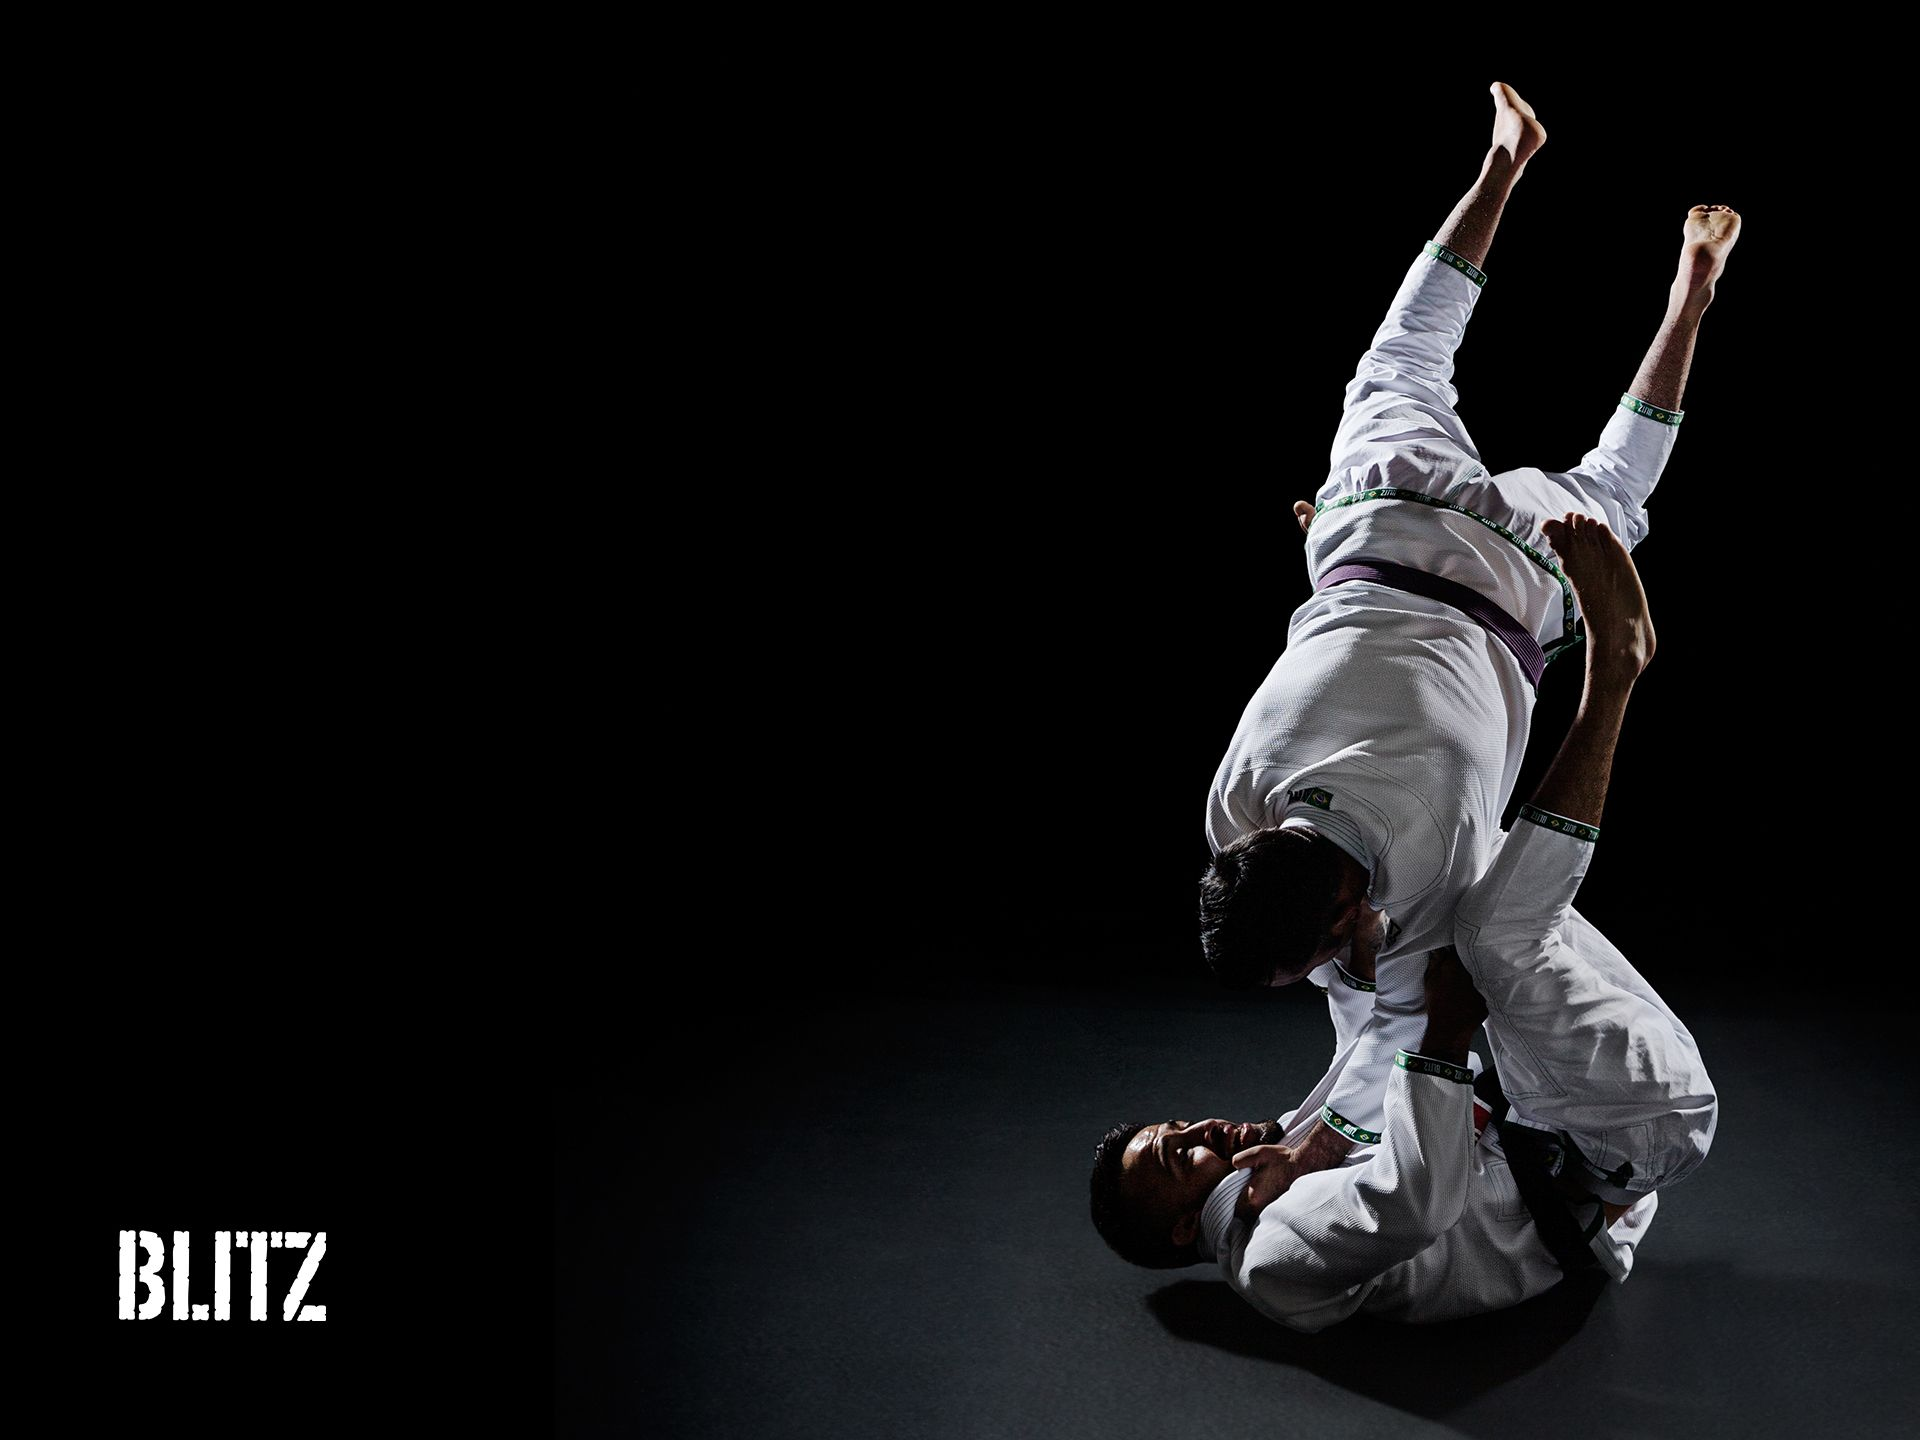 Blitz Brazilian Jiu Jitsu Wallpaper (1920 x 1440) | wallpapers ...